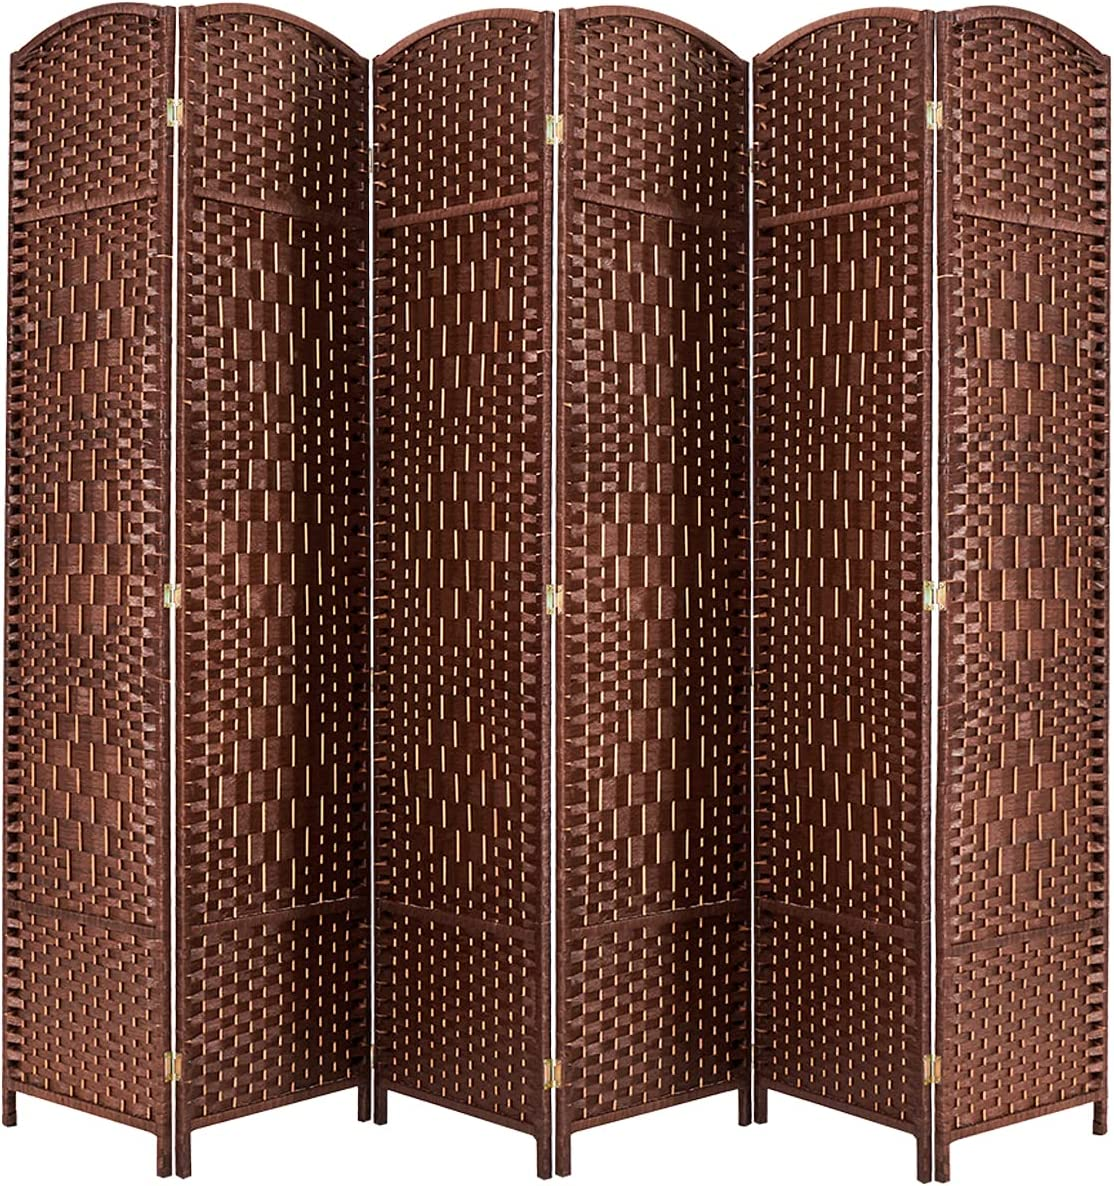 Excited Work Manufacturer OFFicial shop Room dividers 6 Max 50% OFF ft Tall Screen Folding Privacy Ext